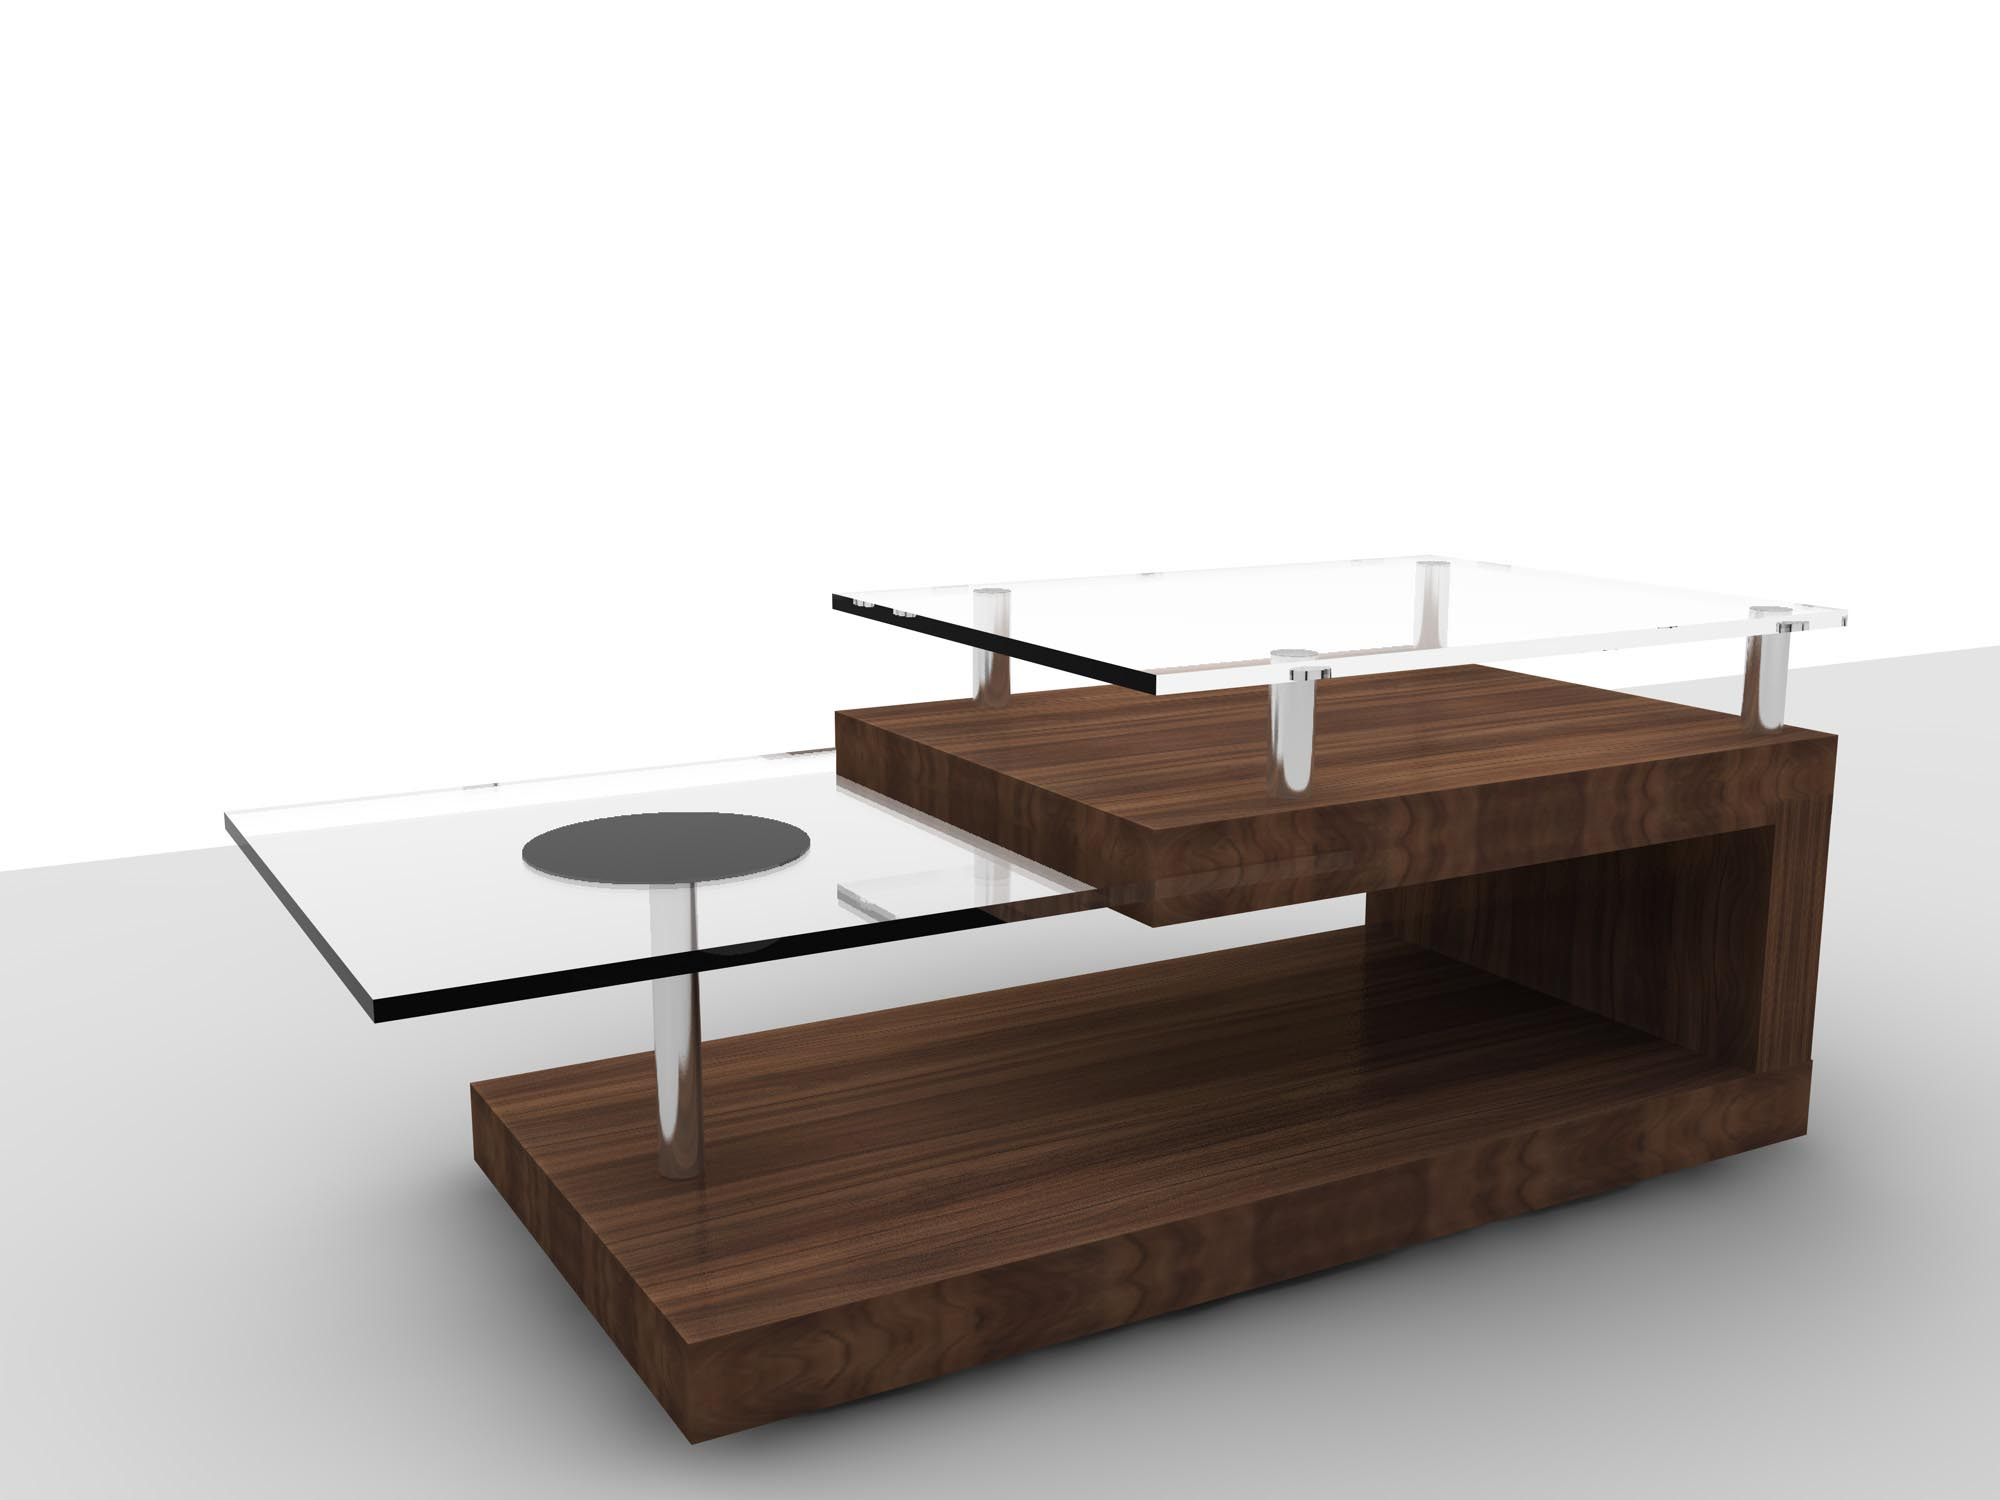 Retro Modern Coffee Table Design Ideas